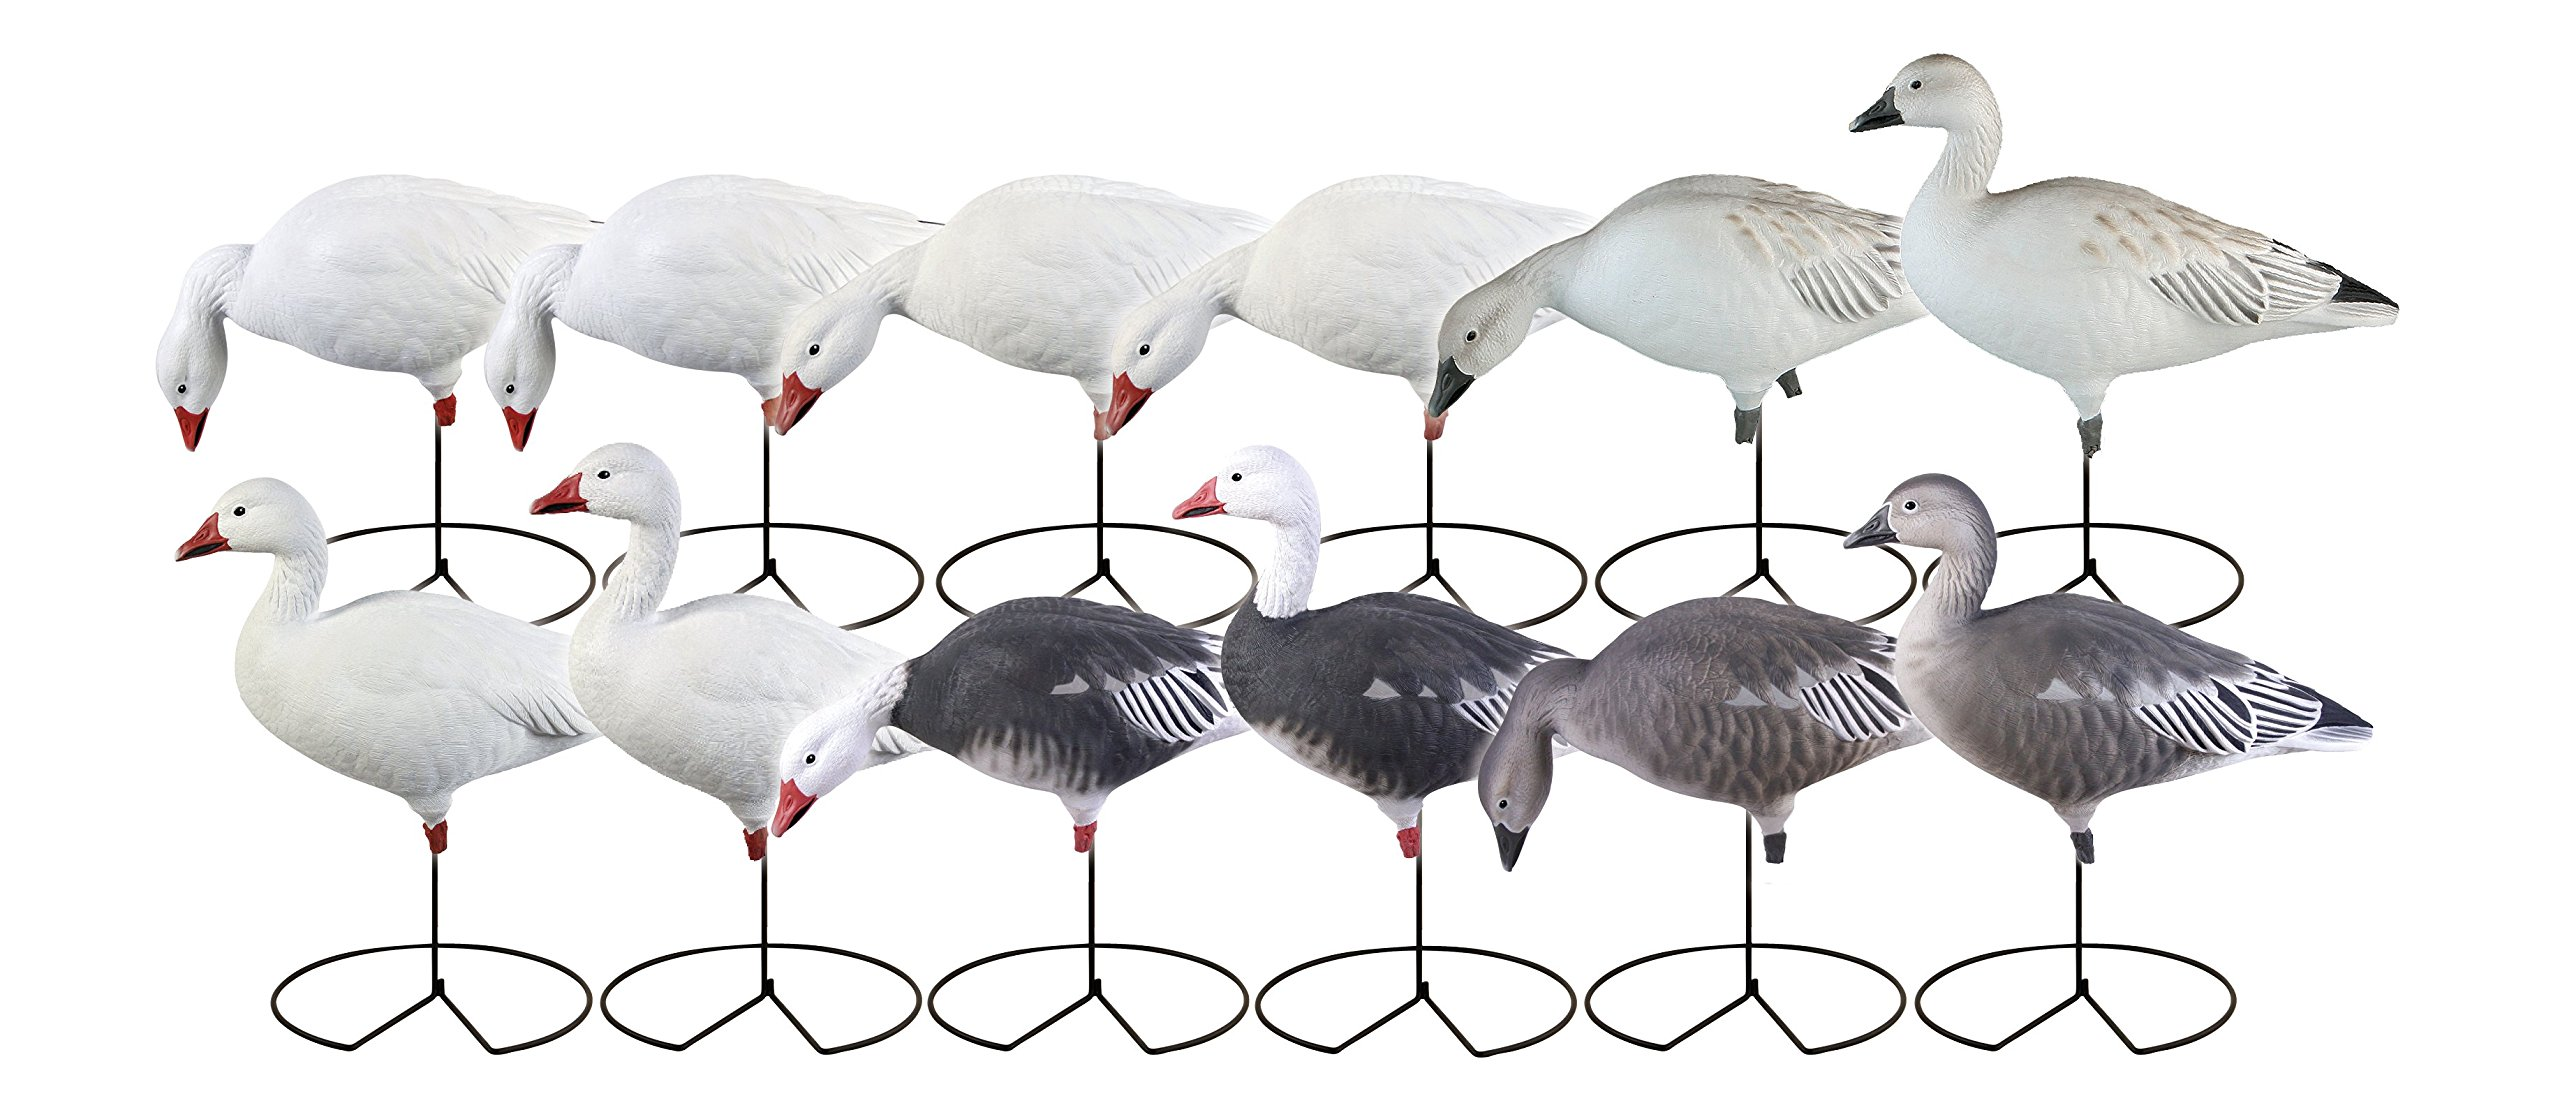 Avery Greenhead Gear, Pro-Grade Full Body Blue Snow Goose Decoys, 71199 - 12 Pack by Avery Outdoors Inc (Image #1)